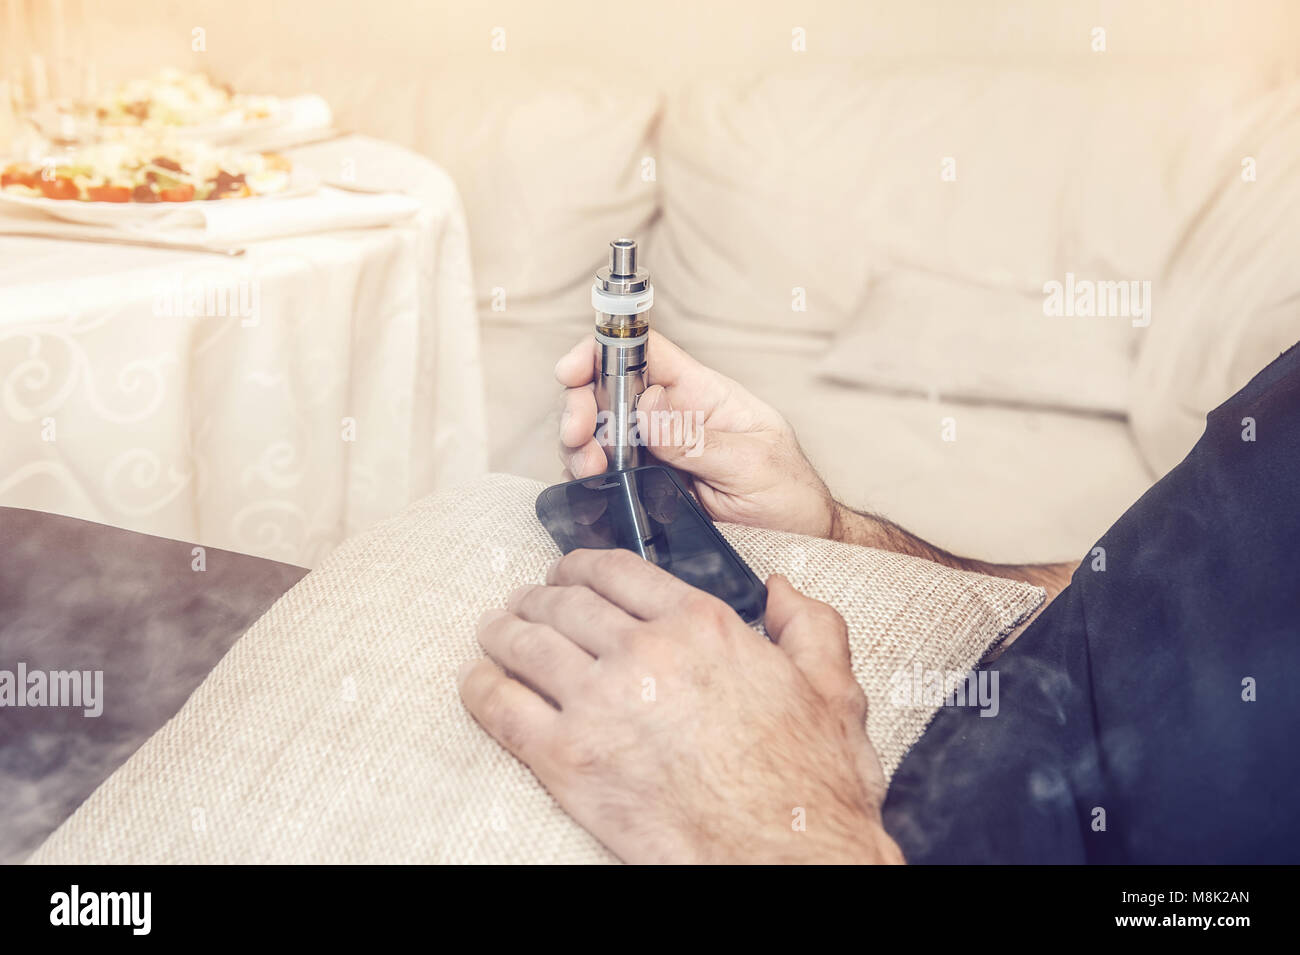 Electronic cigarette in the hands of a man who sits in a chair with a mobile phone. Copy space. Close up. - Stock Image